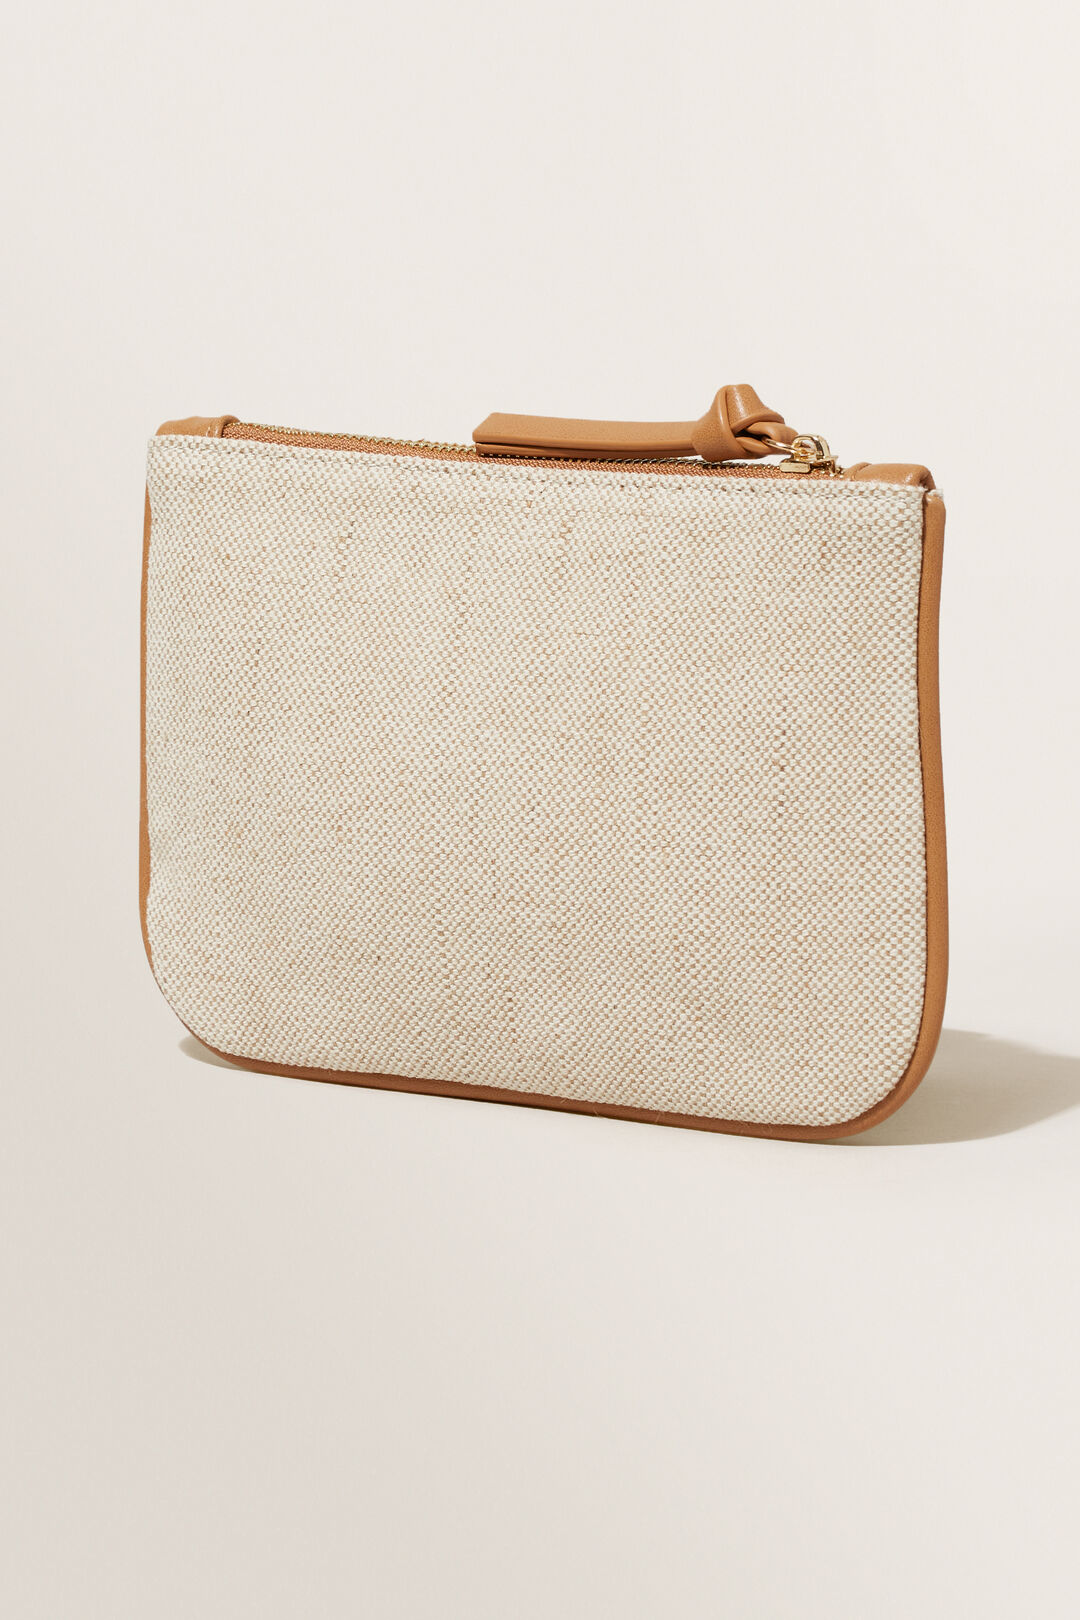 Initial Pouch  R  hi-res